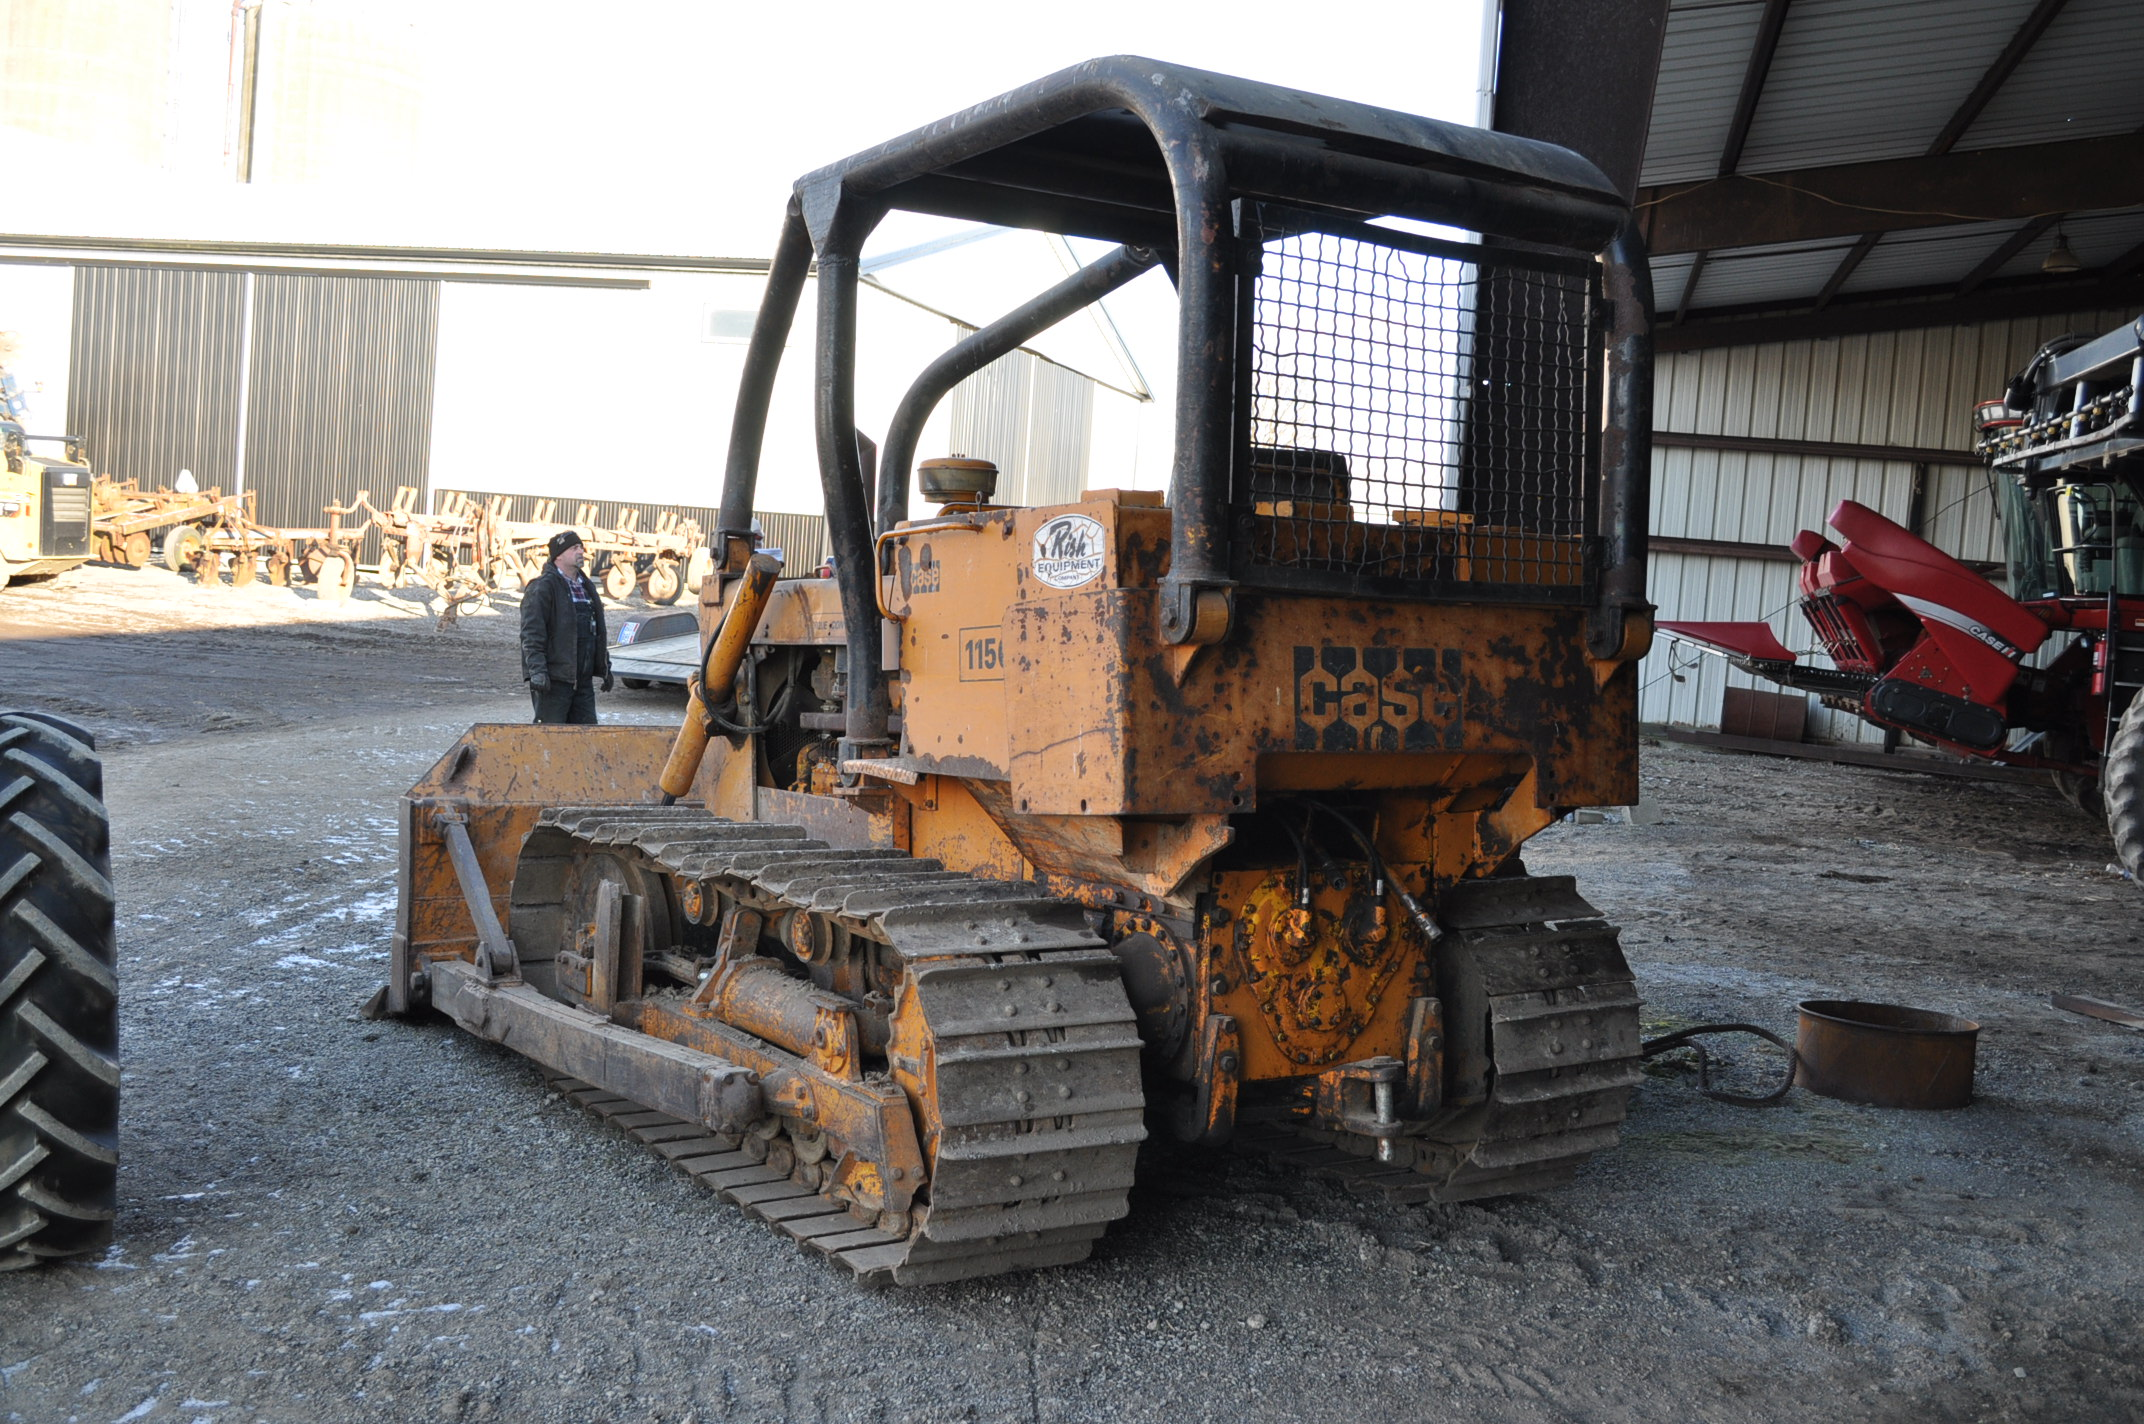 Case 1150 dozer, 8' 4 way blade, rear hitch, diesel, shows 1250 hrs, hrs unkown, SN missing - Image 2 of 11